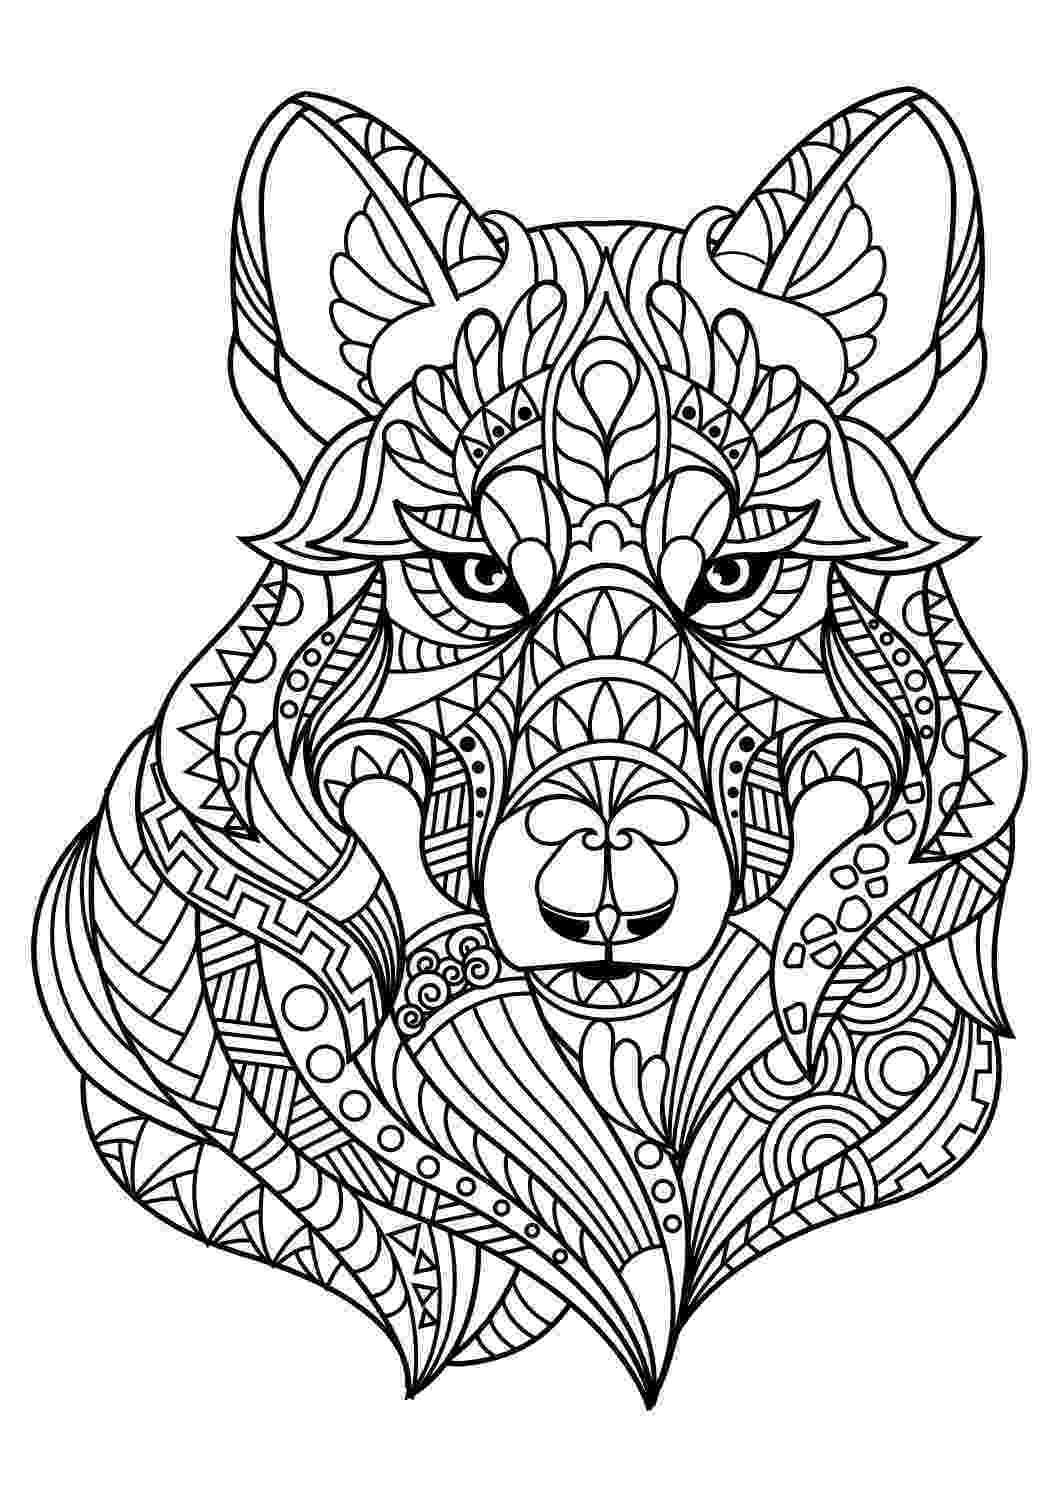 coloring pages pdf animal coloring pages pdf free adult coloring pages coloring pdf pages